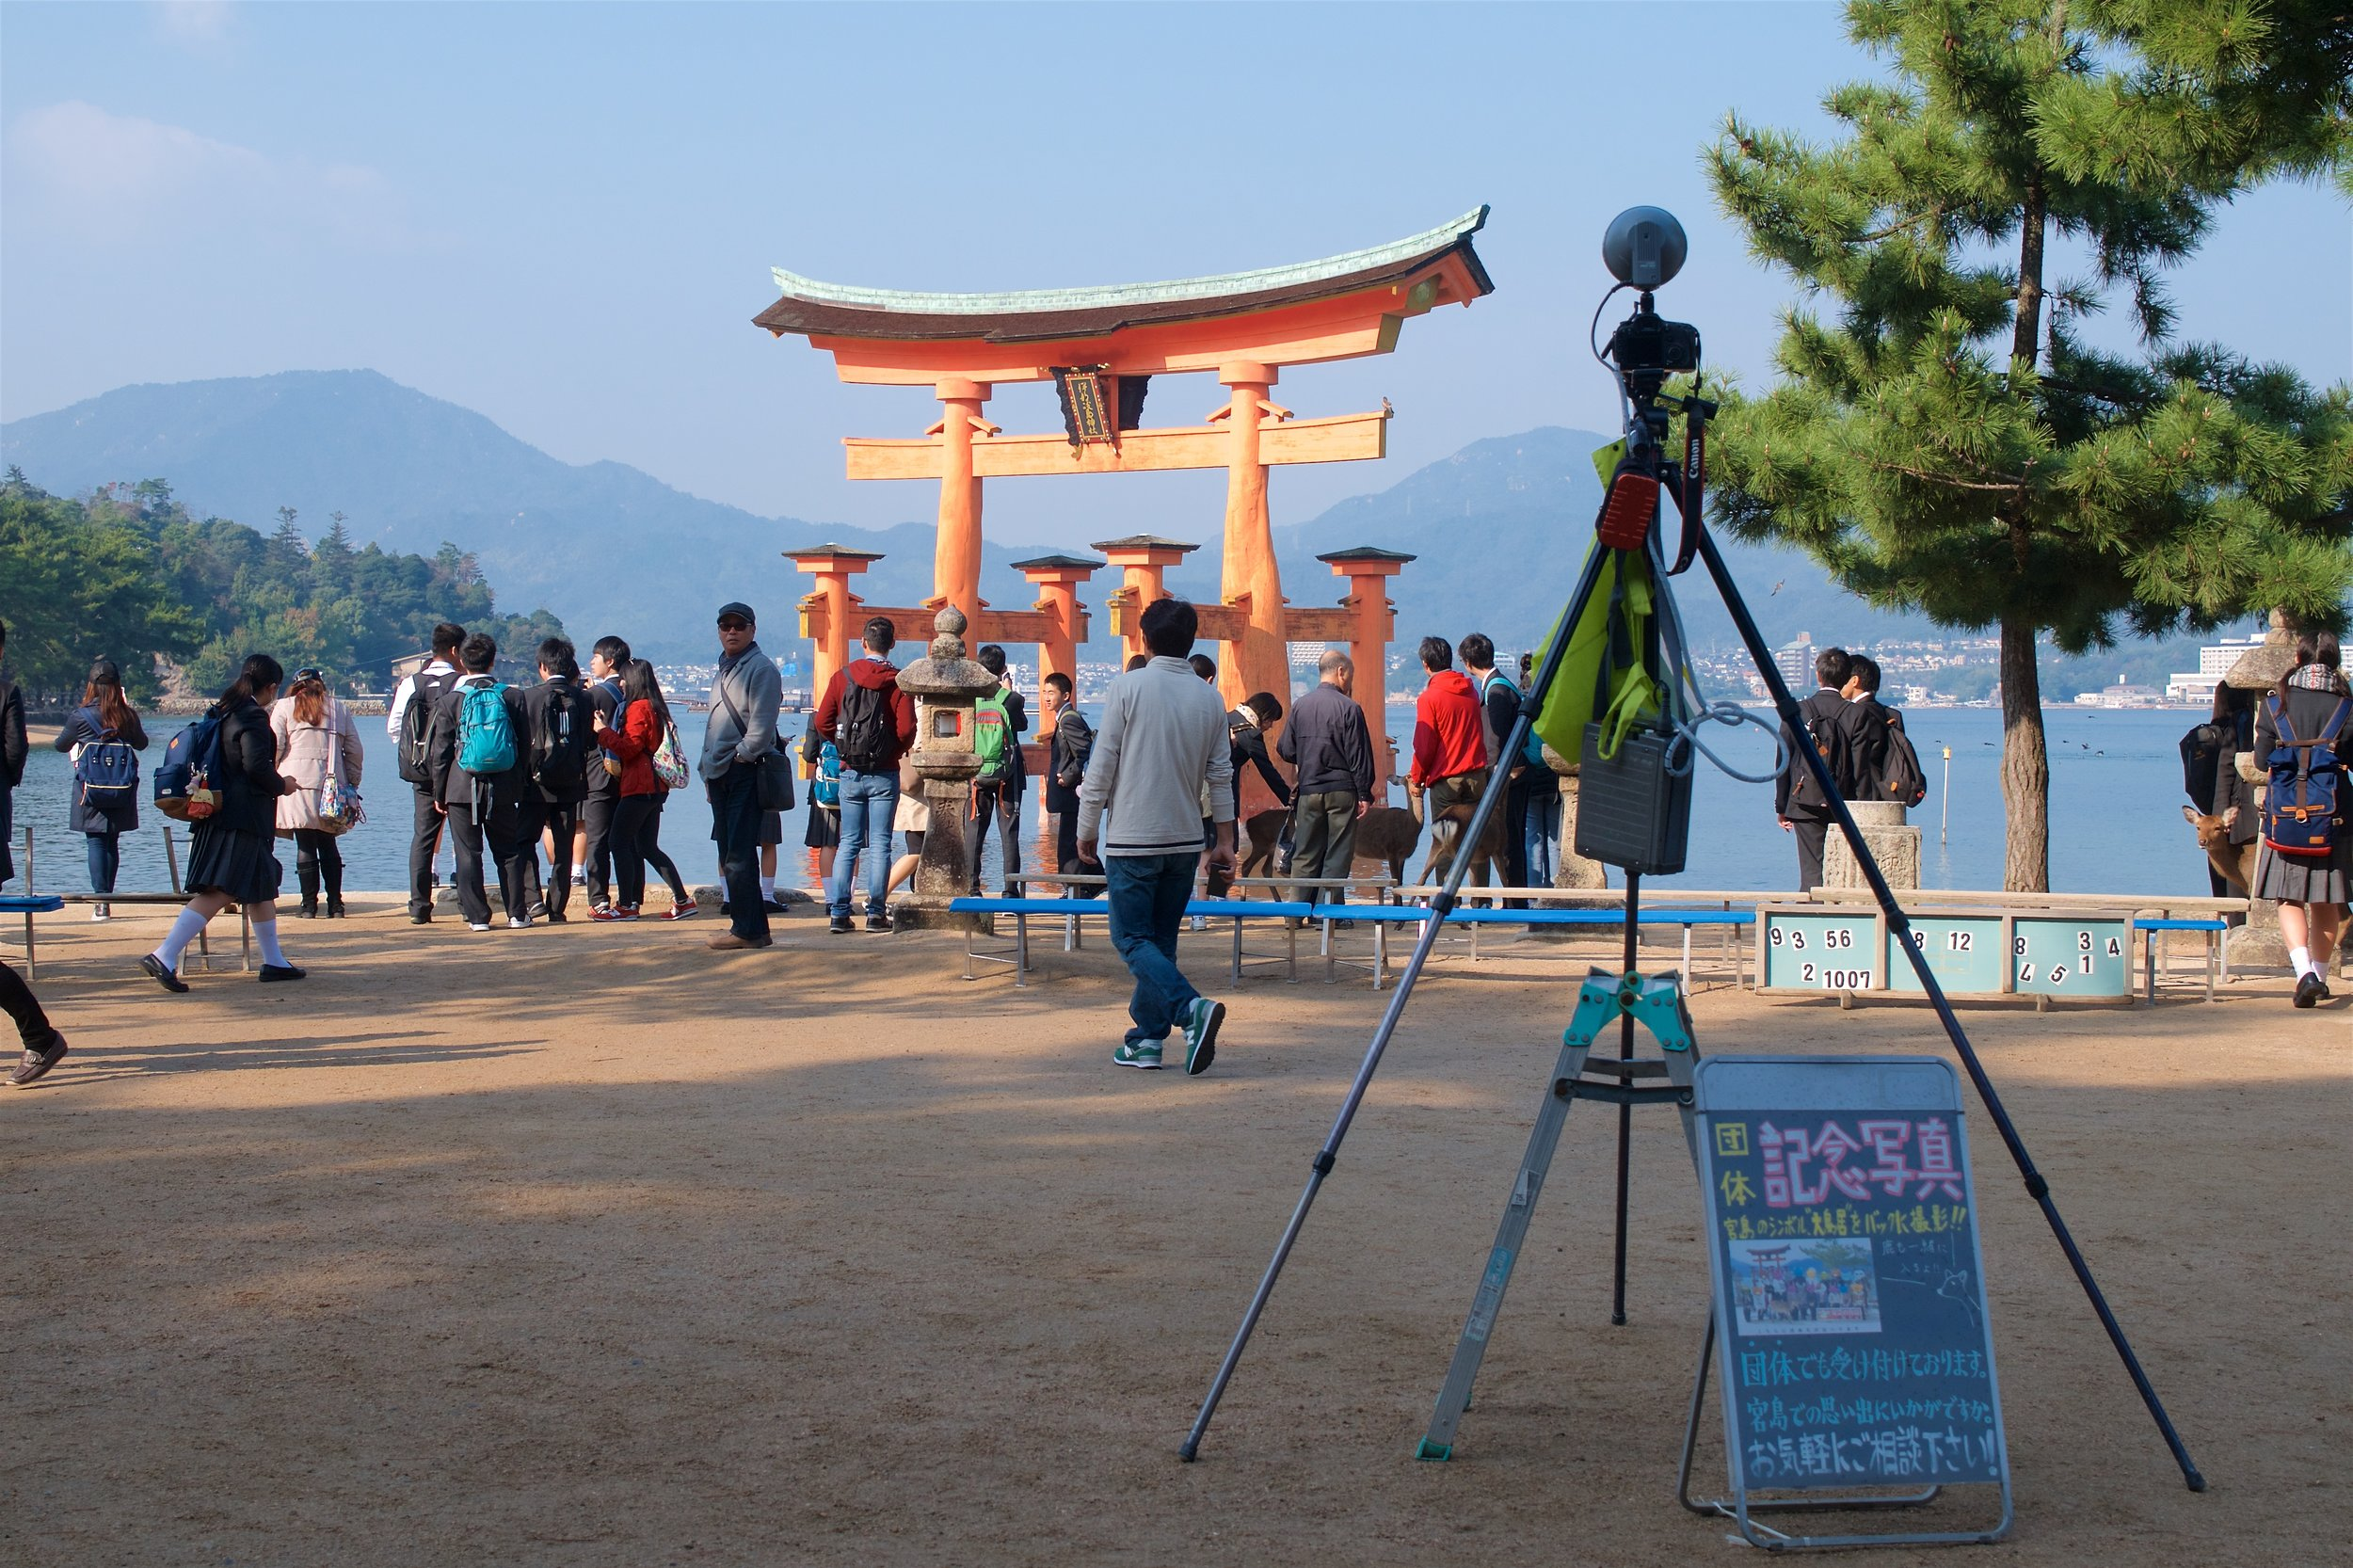 Many group photos being taken with the torii in the background